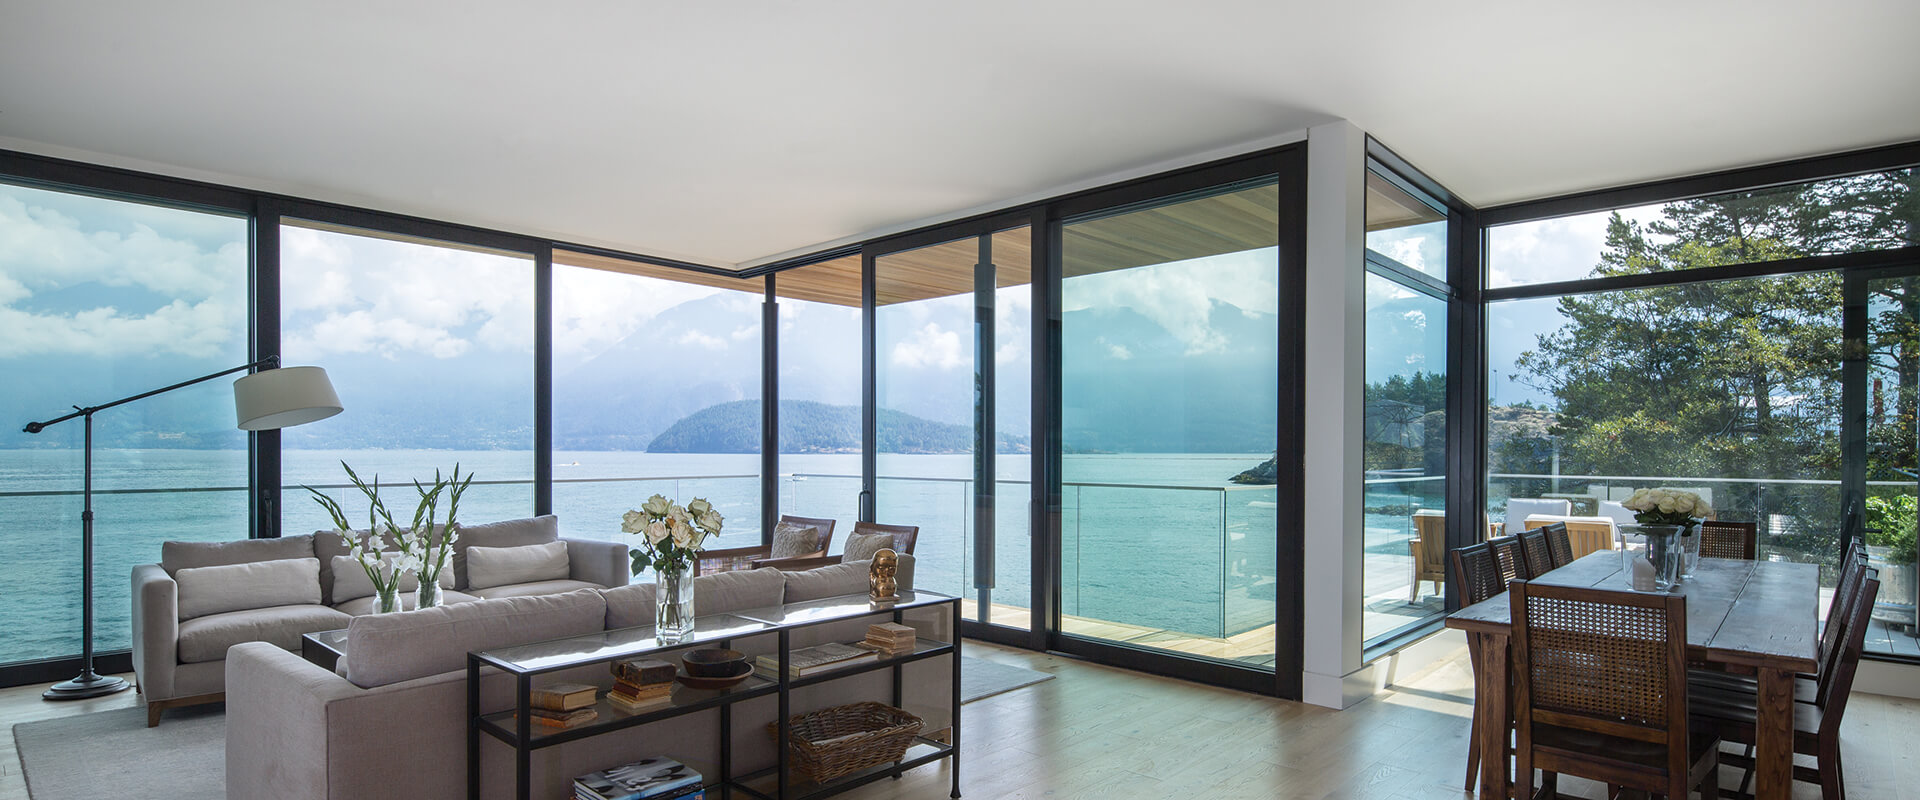 Terraspan Lift & Slide Doors AH412